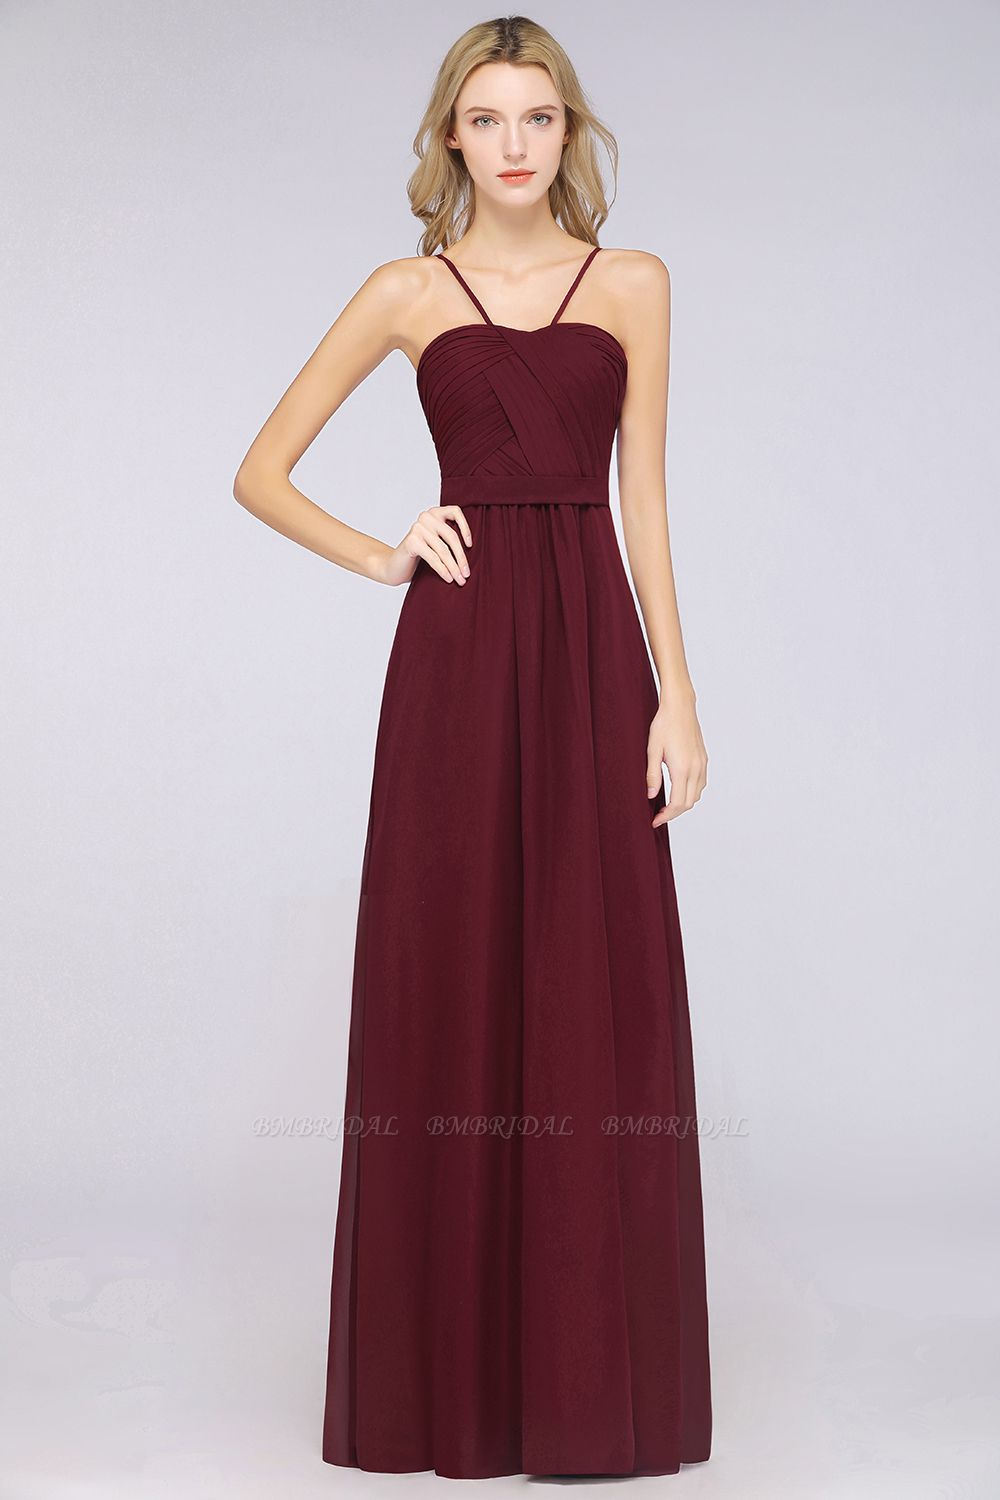 BMbridal Chic Burgundy Sweetheart Long Bridesmaid Dress With Spaghetti-Straps